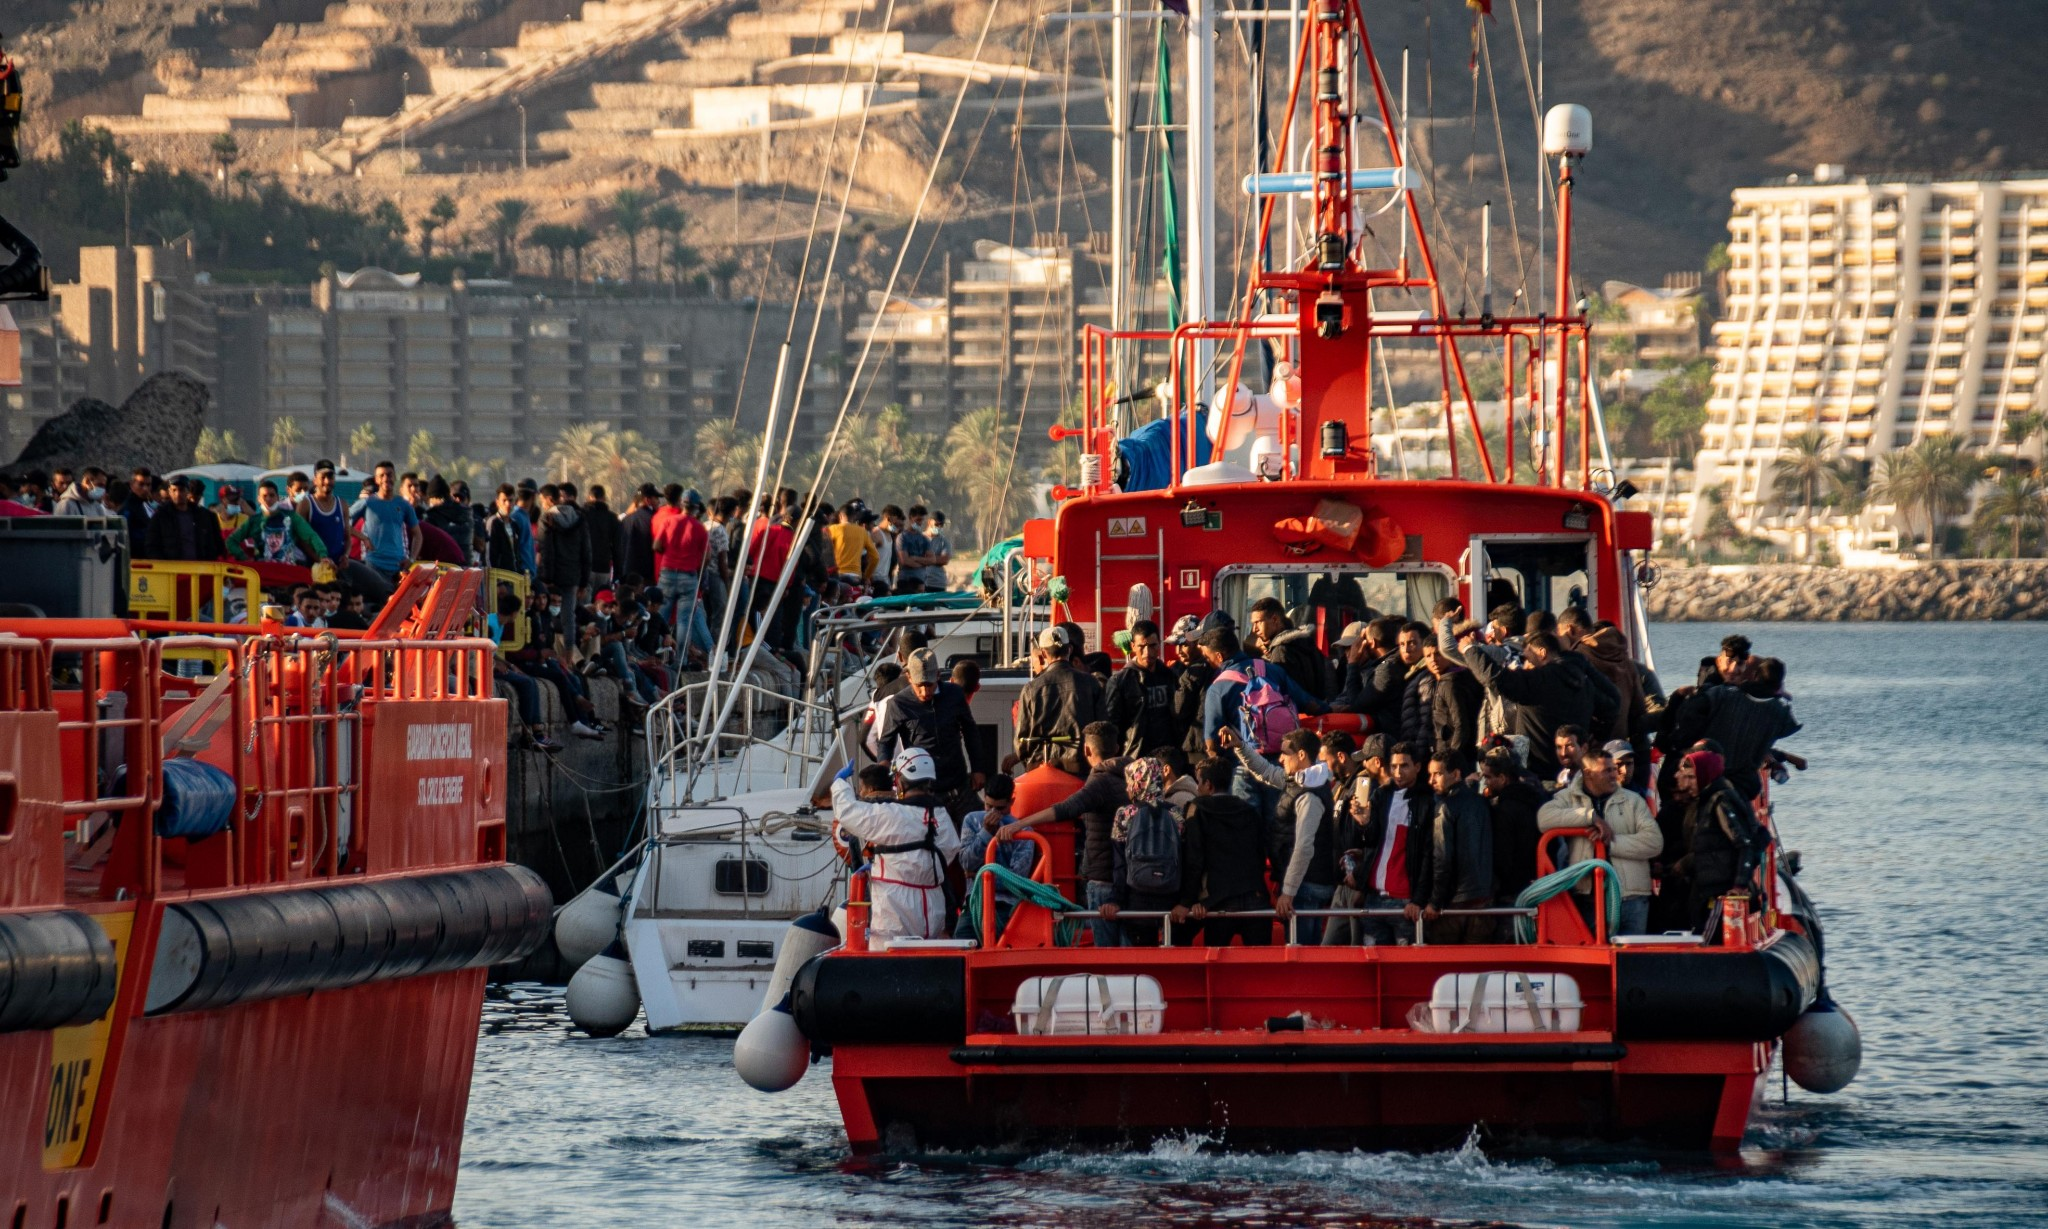 'This lack of humanity can't go on': Canary Islands struggle with huge rise in migration